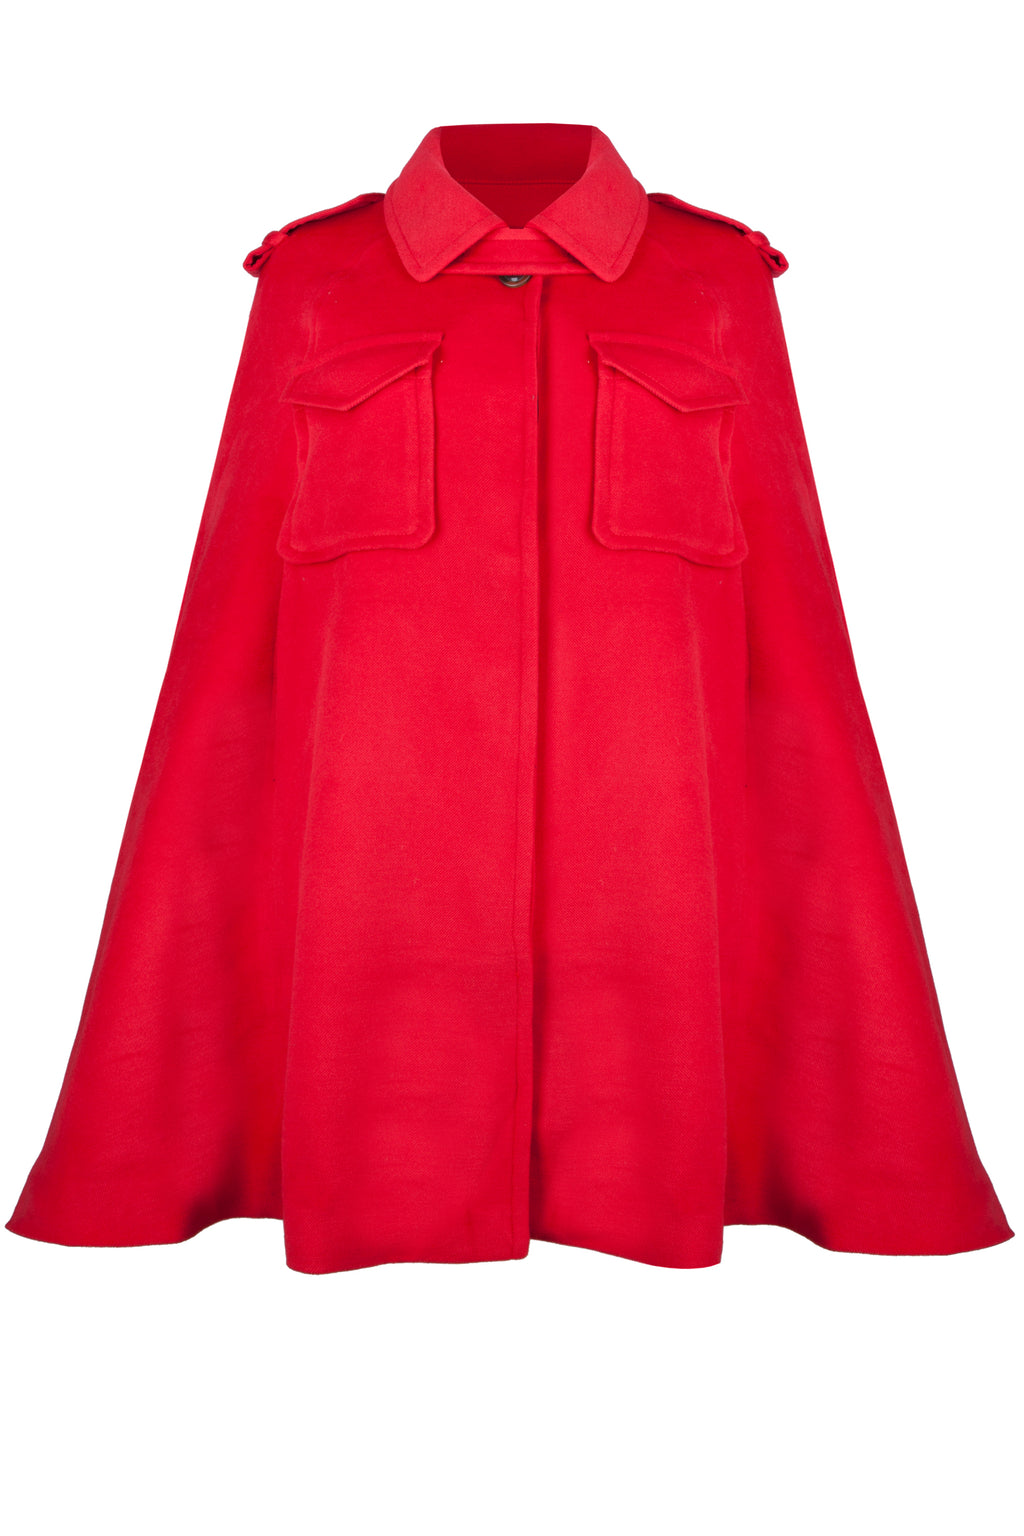 Ravena Cape - Red